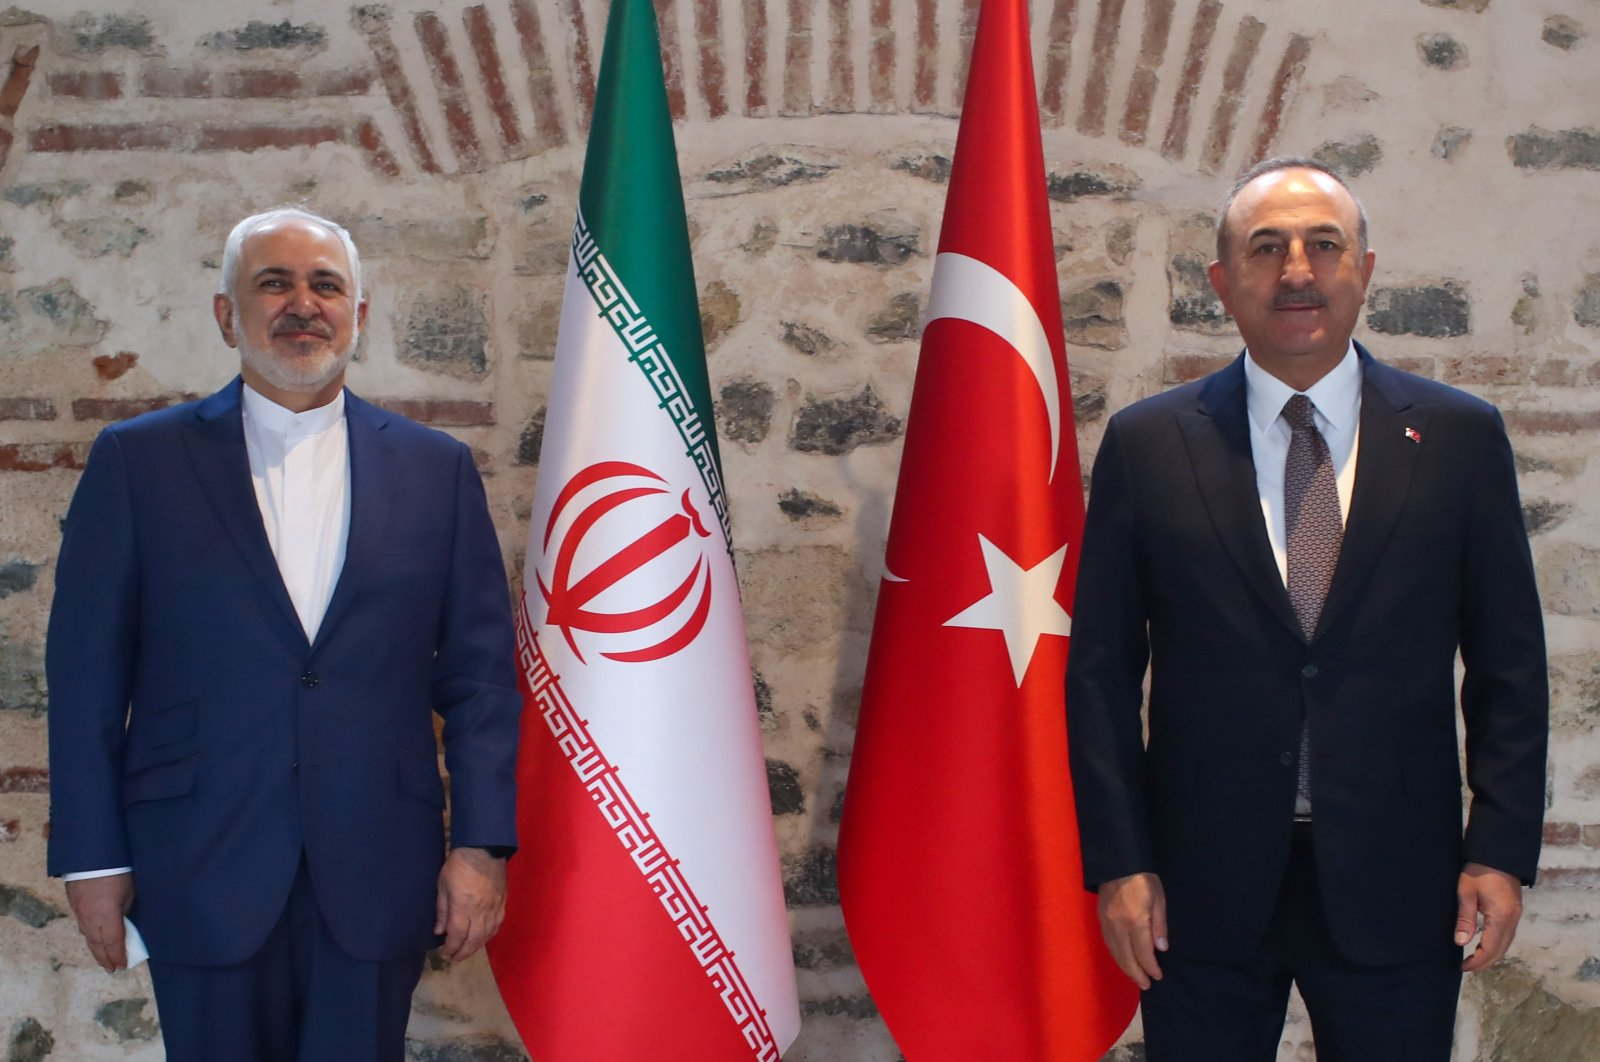 Turkish Foreign Minister Mevlüt Çavuşoğlu meets with his Iranian counterpart Javad Zarif in Istanbul, Turkey, March 19, 2021. (AA Photo)